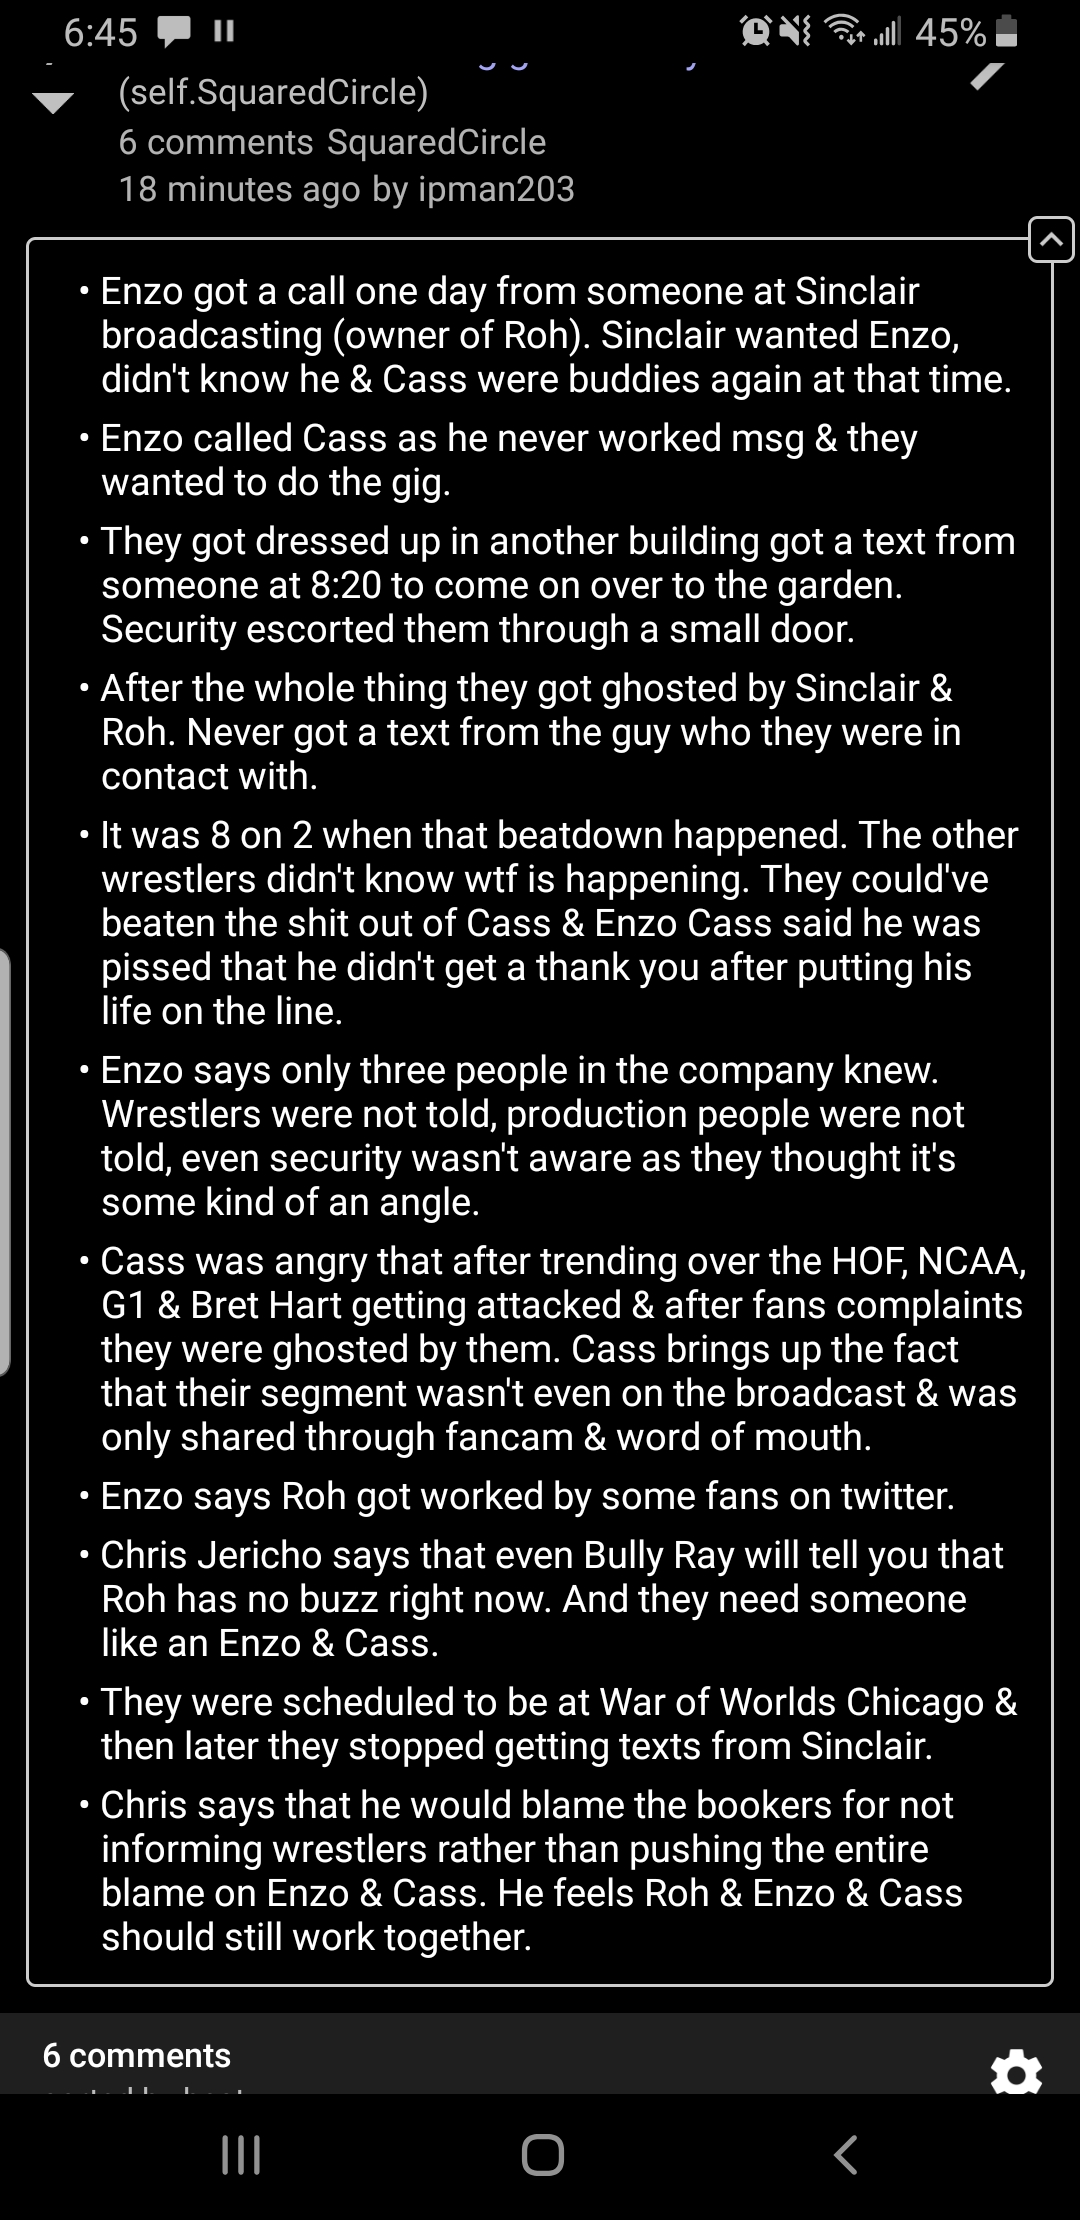 "6.45 ' "" ""fig 6am"" 45%- V (self.SquaredCircle) UV J I 6 comments SquaredCircle 18 minutes ago by ipman203 - Enzo got a call one day from someone at Sinclair broadcasting (owner of Roh). Sinclair wanted Enzo, didn't know he & Cass were buddies again at that time. - Enzo called Cass as he never worked msg & they wanted to do the gig. - They got dressed up in another building got a text from someone at 8:20 to come on over to the garden. Security escorted them through a small door. - After the whole thing they got ghosted by Sinclair & Roh. Never got a text from the guy who they were in contact with. - It was 8 on 2 when that beatdown happened. The other wrestlers didn't know wtf is happening. They could've beaten the shit out of Cass & Enzo Cass said he was pissed that he didn't get a thank you after putting his life on the line. - Enzo says only three people in the company knew. Wrestlers were not told, production people were not told, even security wasn't aware as they thought it's some kind of an angle. - Cass was angry that after trending over the HOF, NCAA, G1 & Bret Hart getting attacked & after fans complaints they were ghosted by them. Cass brings up the fact that their segment wasn't even on the broadcast & was only shared through fancam & word of mouth. - Enzo says Roh got worked by some fans on twitter. - Chris Jericho says that even Bully Ray will tell you that Roh has no buzz right now. And they need someone like an Enzo & Cass. - They were scheduled to be at War of Worlds Chicago & then later they stopped getting texts from Sinclair. - Chris says that he would blame the bookers for not informing wrestlers rather than pushing the entire blame on Enzo & Cass. He feels Roh & Enzo & Cass should still work together. 6 comments a ""I O < https://inspirational.ly"